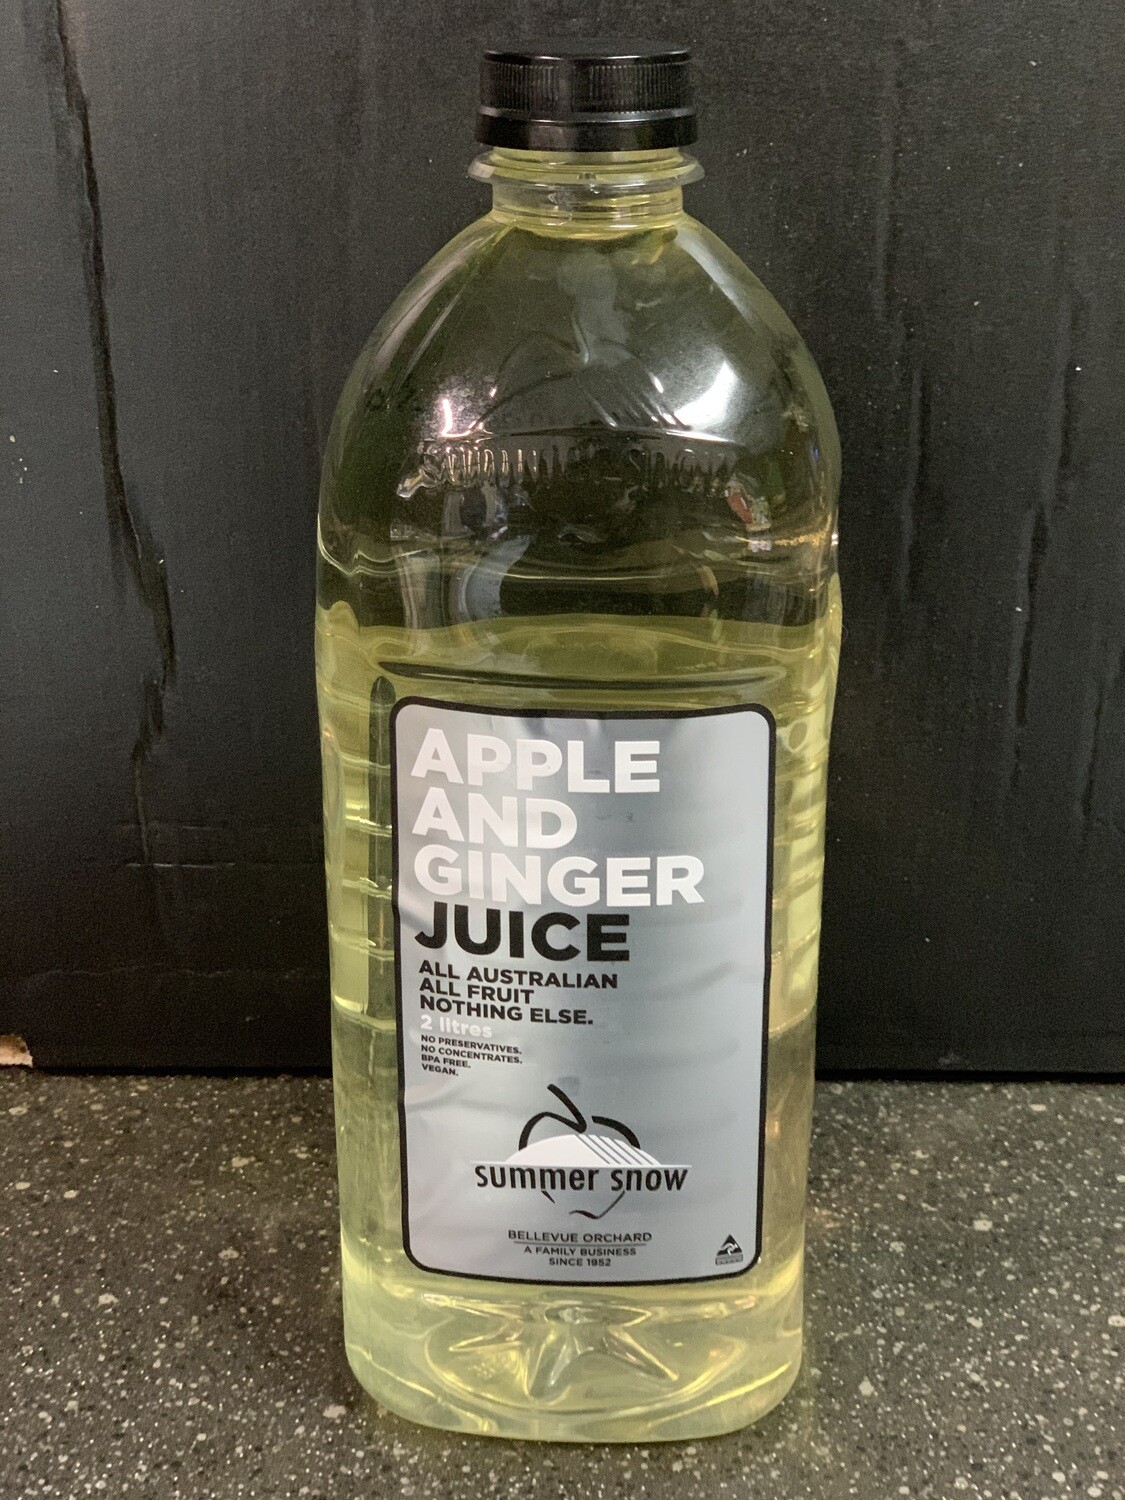 Apple and Ginger Juice (2 litre)